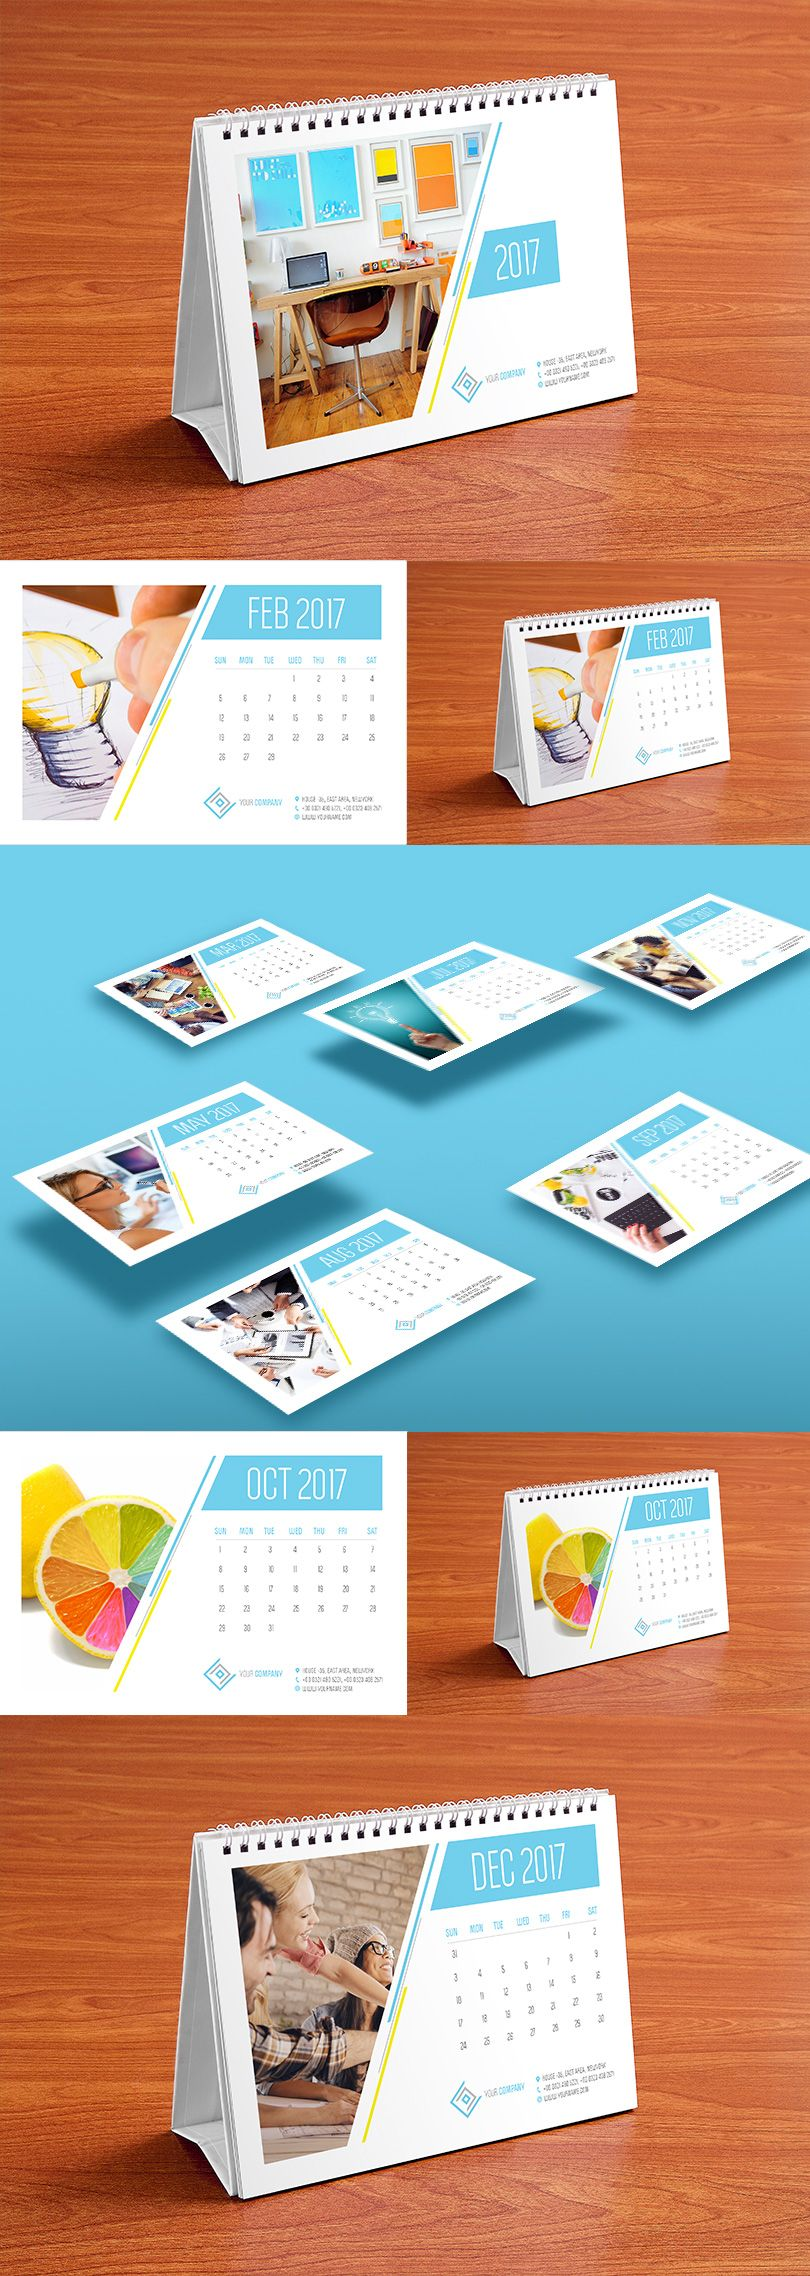 Table Calendar Design Template And Mock Up Psd 2017 Calender